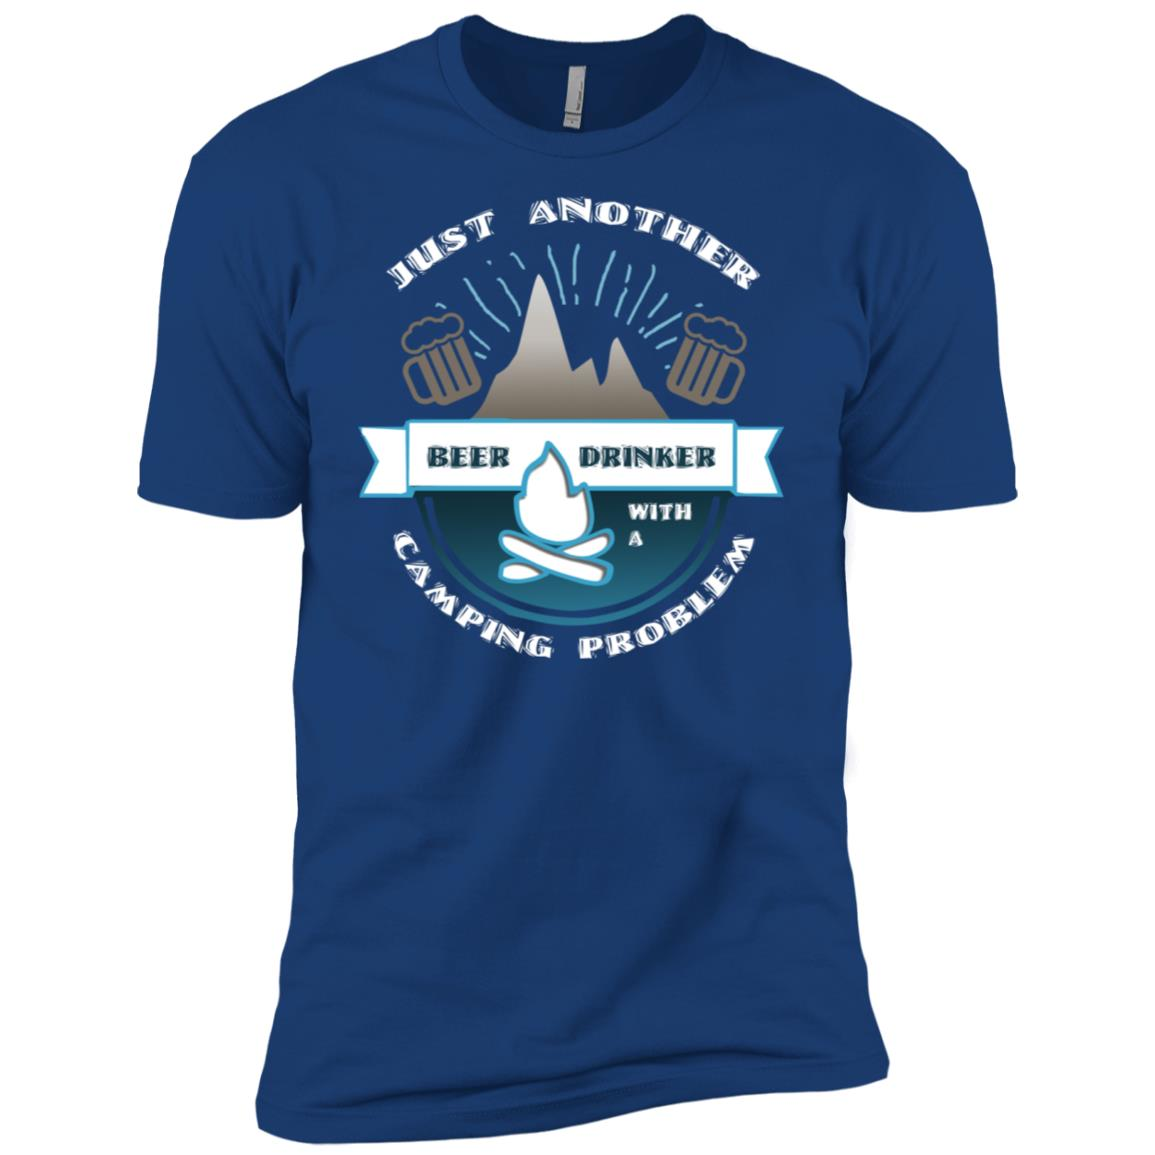 Beer Drinker With Camping Problem Cool Hiking Men Short Sleeve